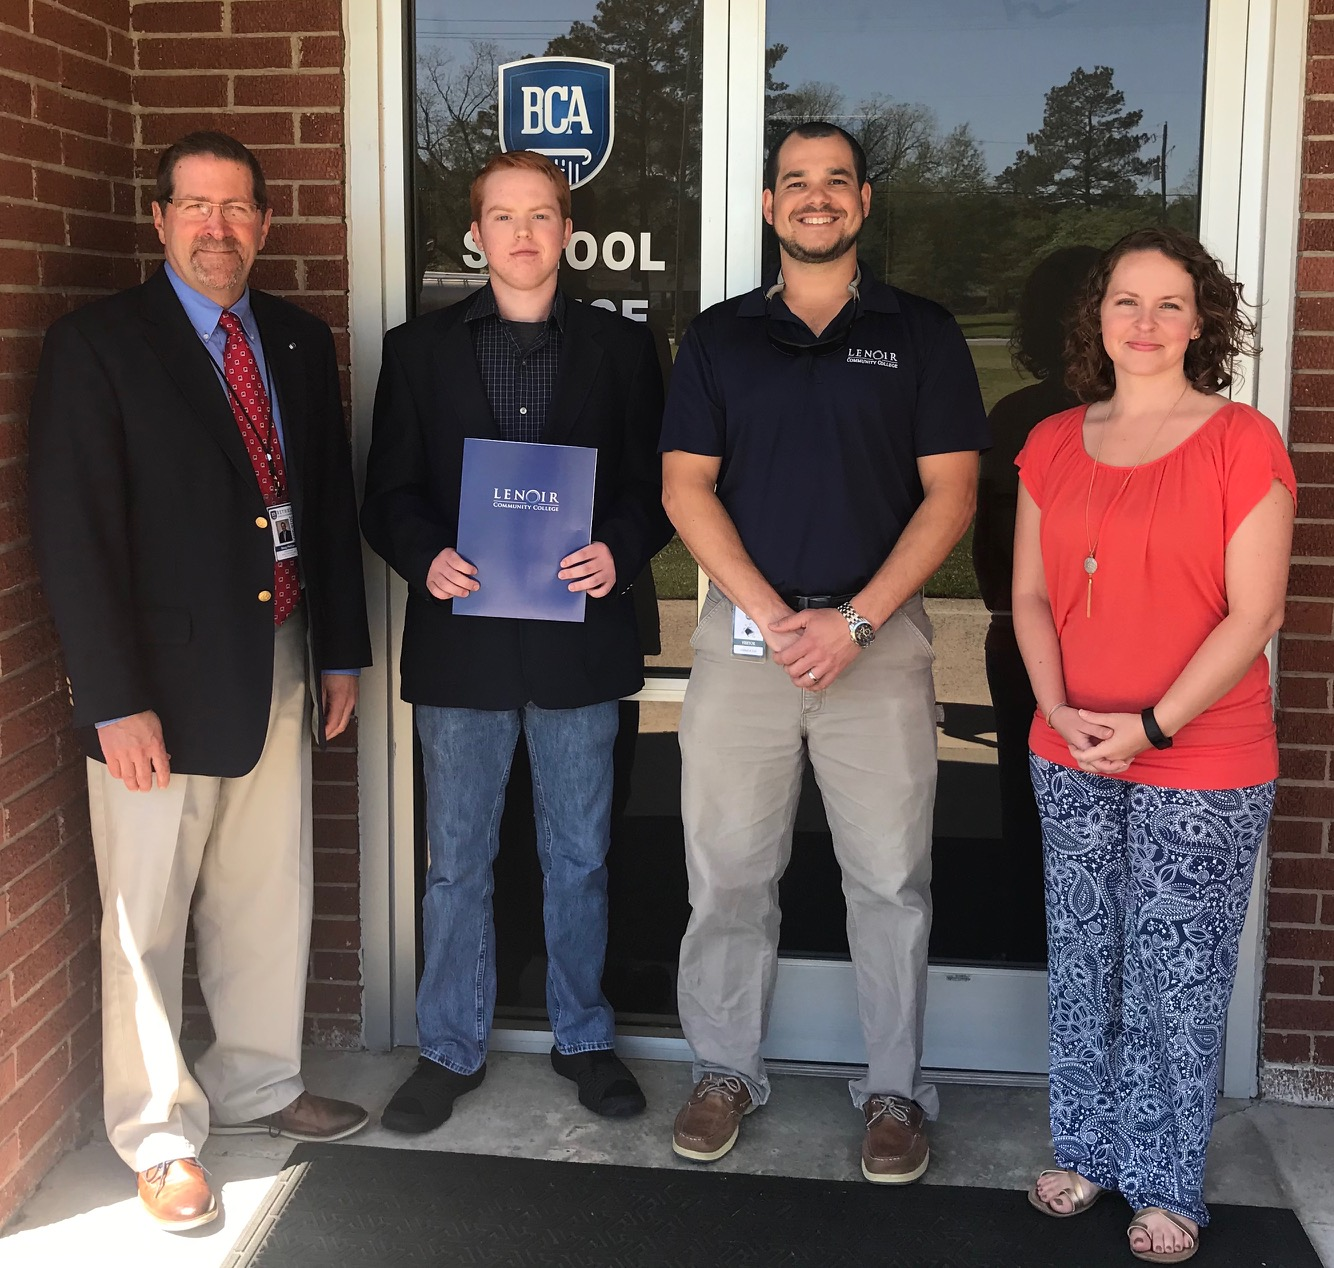 From left are Bethel Christian Academy Principal Doug Phillips; BCA awardee Coleman Hill, Industrial Systems Technology; LCC Industrial Systems Program Chair Stephen Edwards; and BCA Counselor Samee Jo Miller.